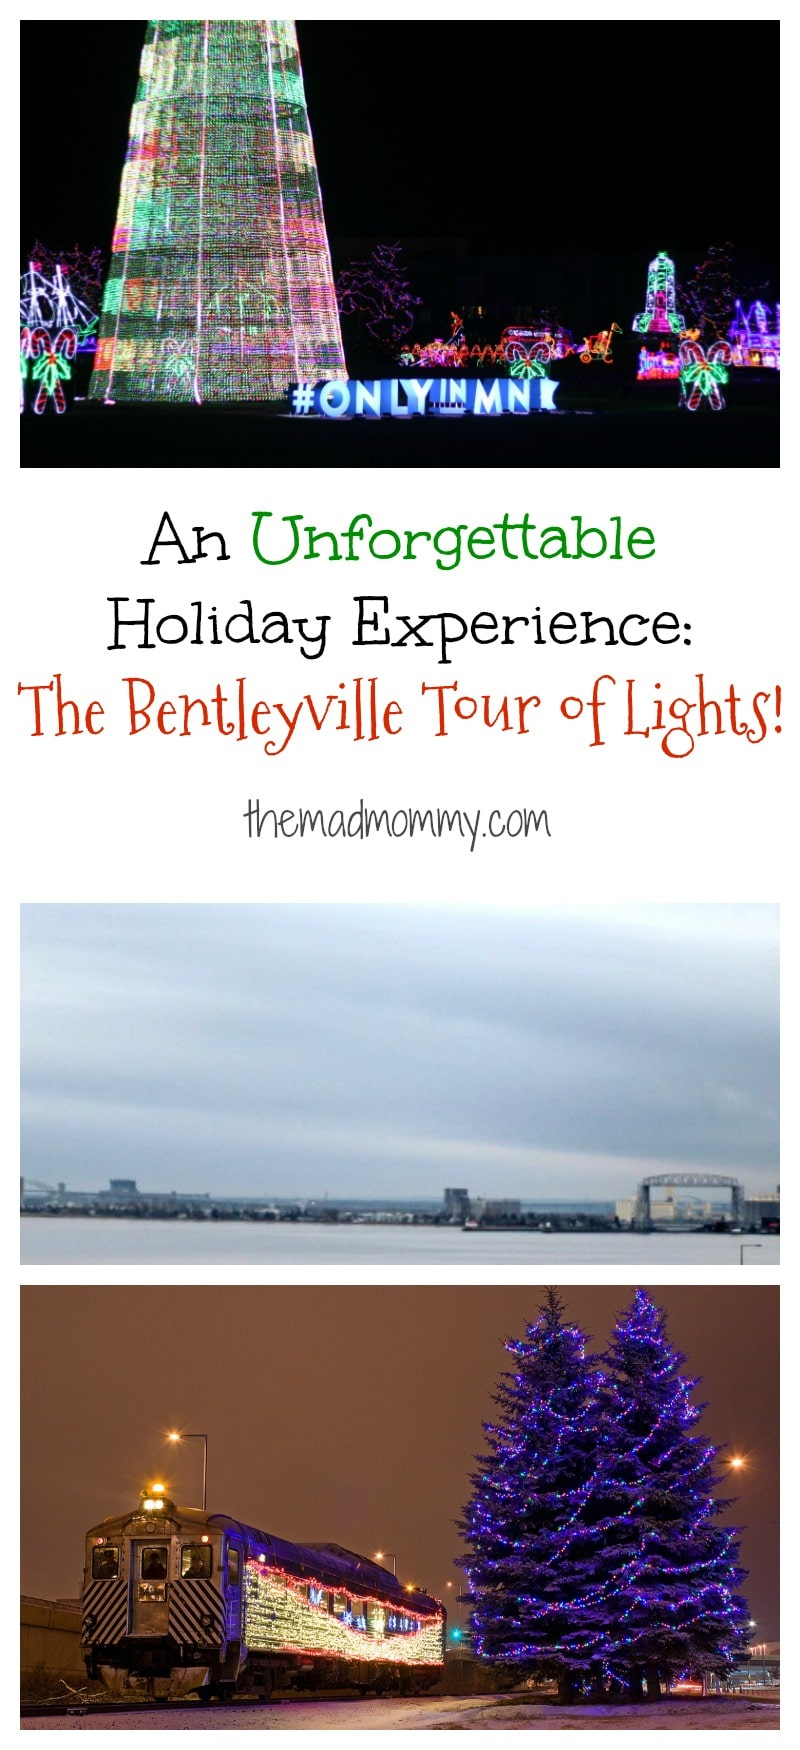 We had the most unforgettable holiday experience, thanks to the #EdgewaterDuluth and the Bentleyville Tour of Lights! #Hosted #OnlyinMN